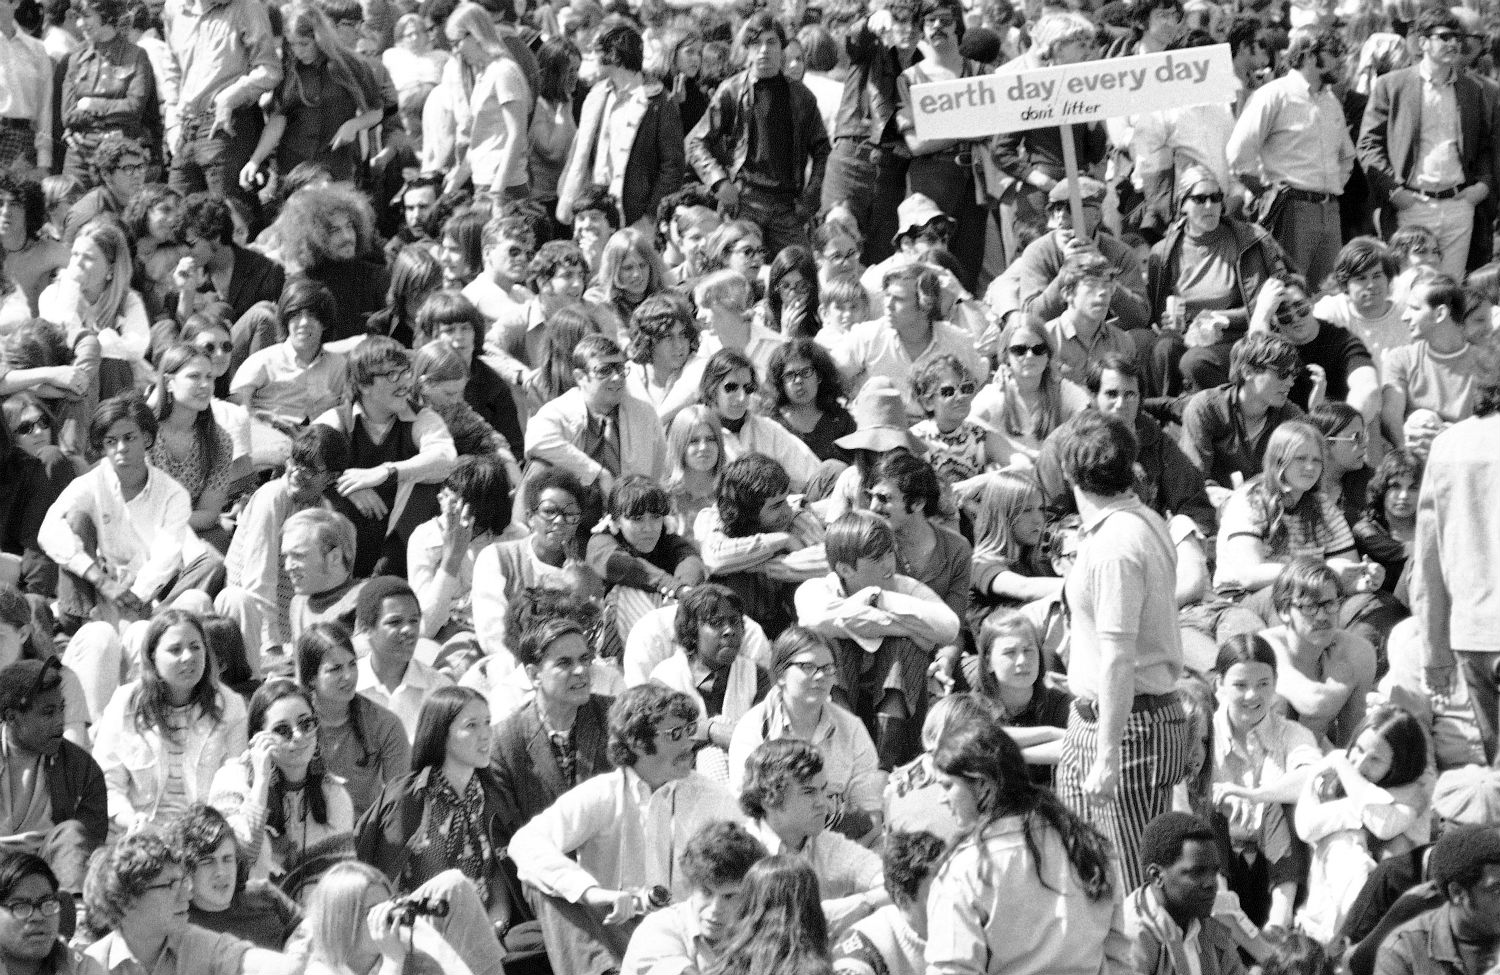 In-1970-Environmentalism-Was-Poised-to-'Bring-Us-All-Together.'-What-Happened